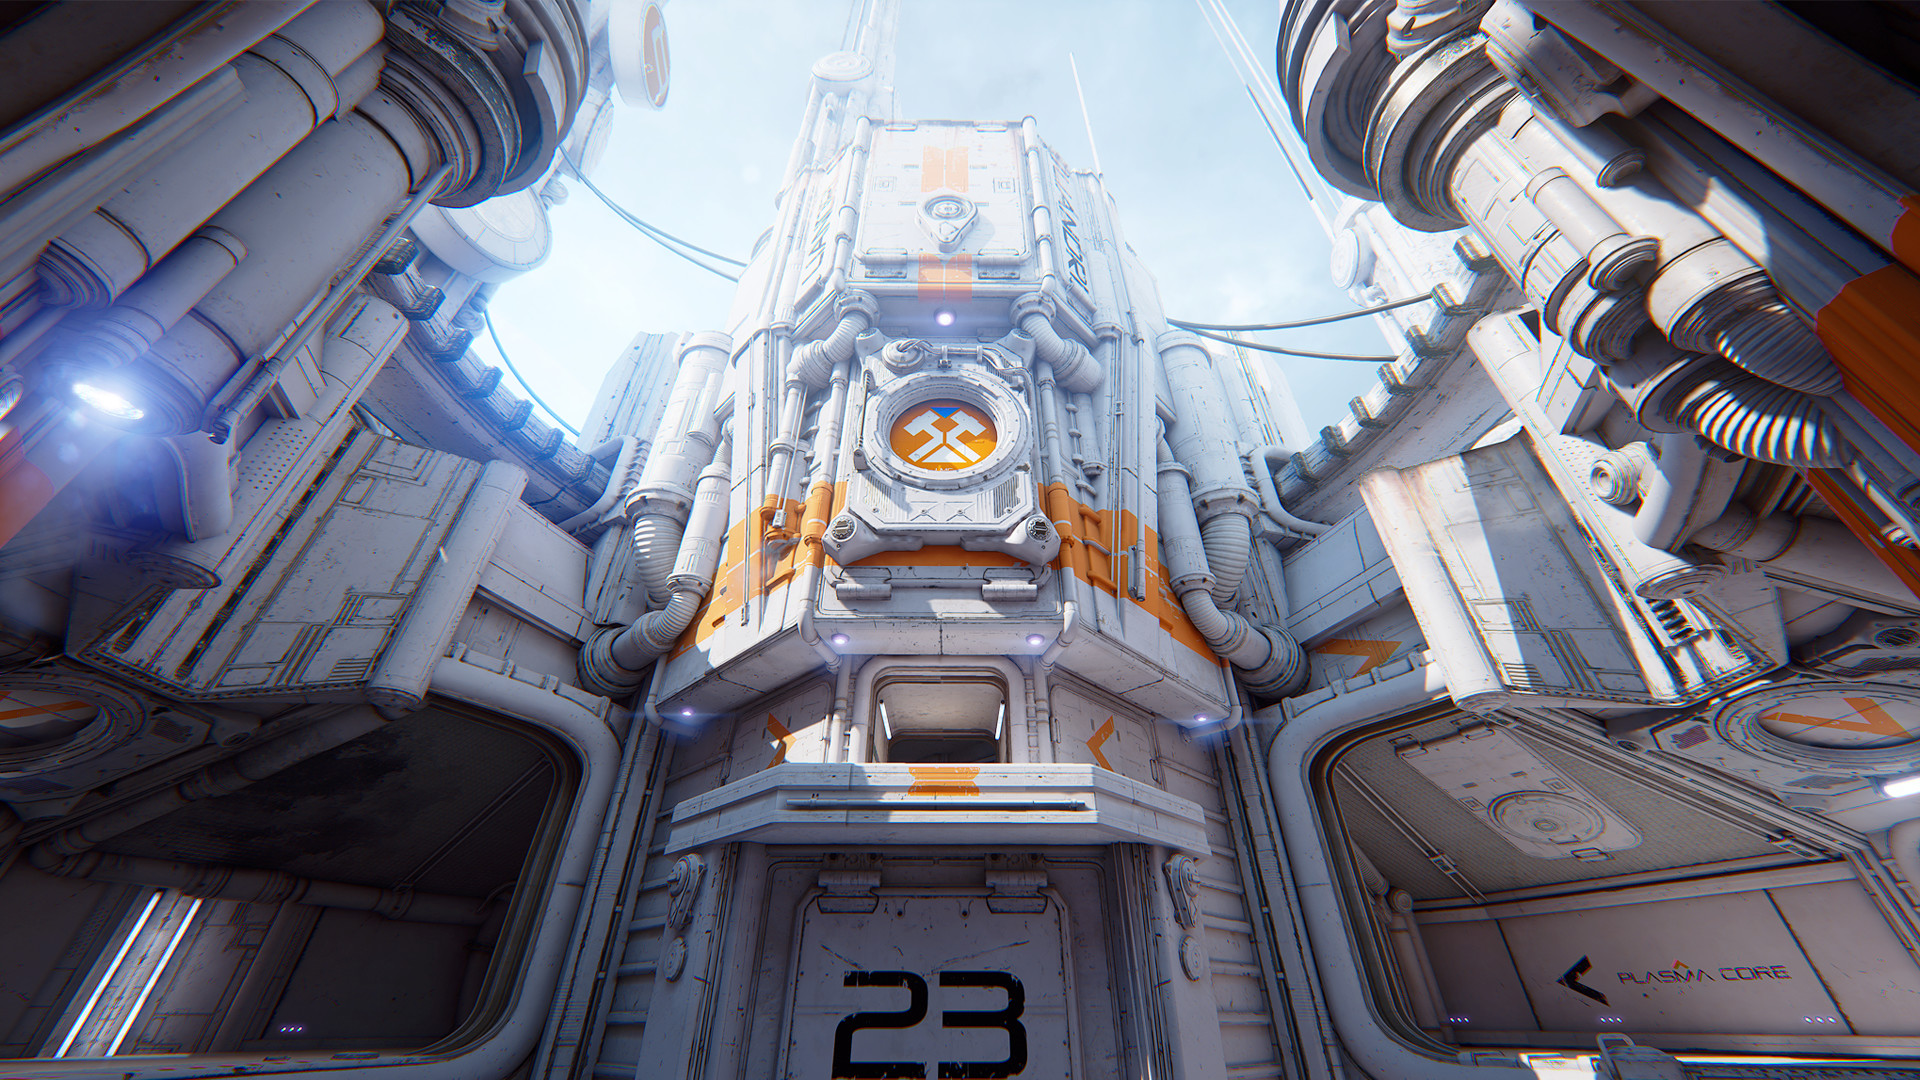 ArtStation - Outpost 23 Unreal Tournament (Epic Games), REK 23